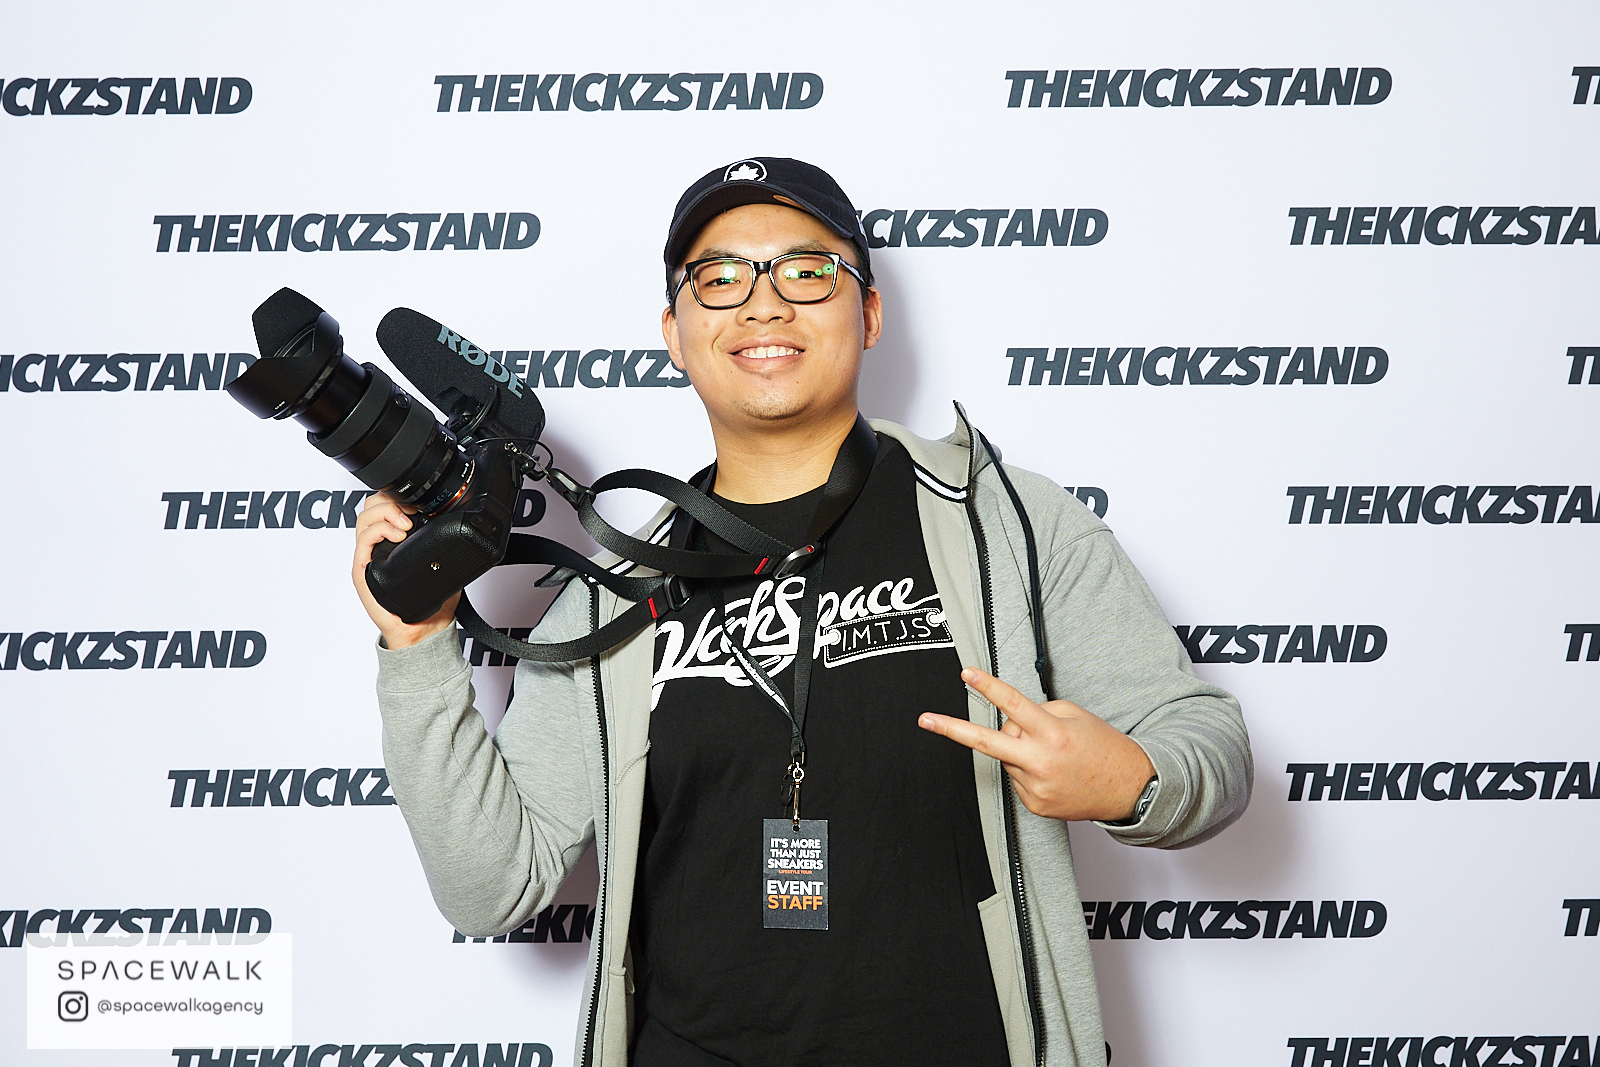 KICKZSTAND_BOOTH_031